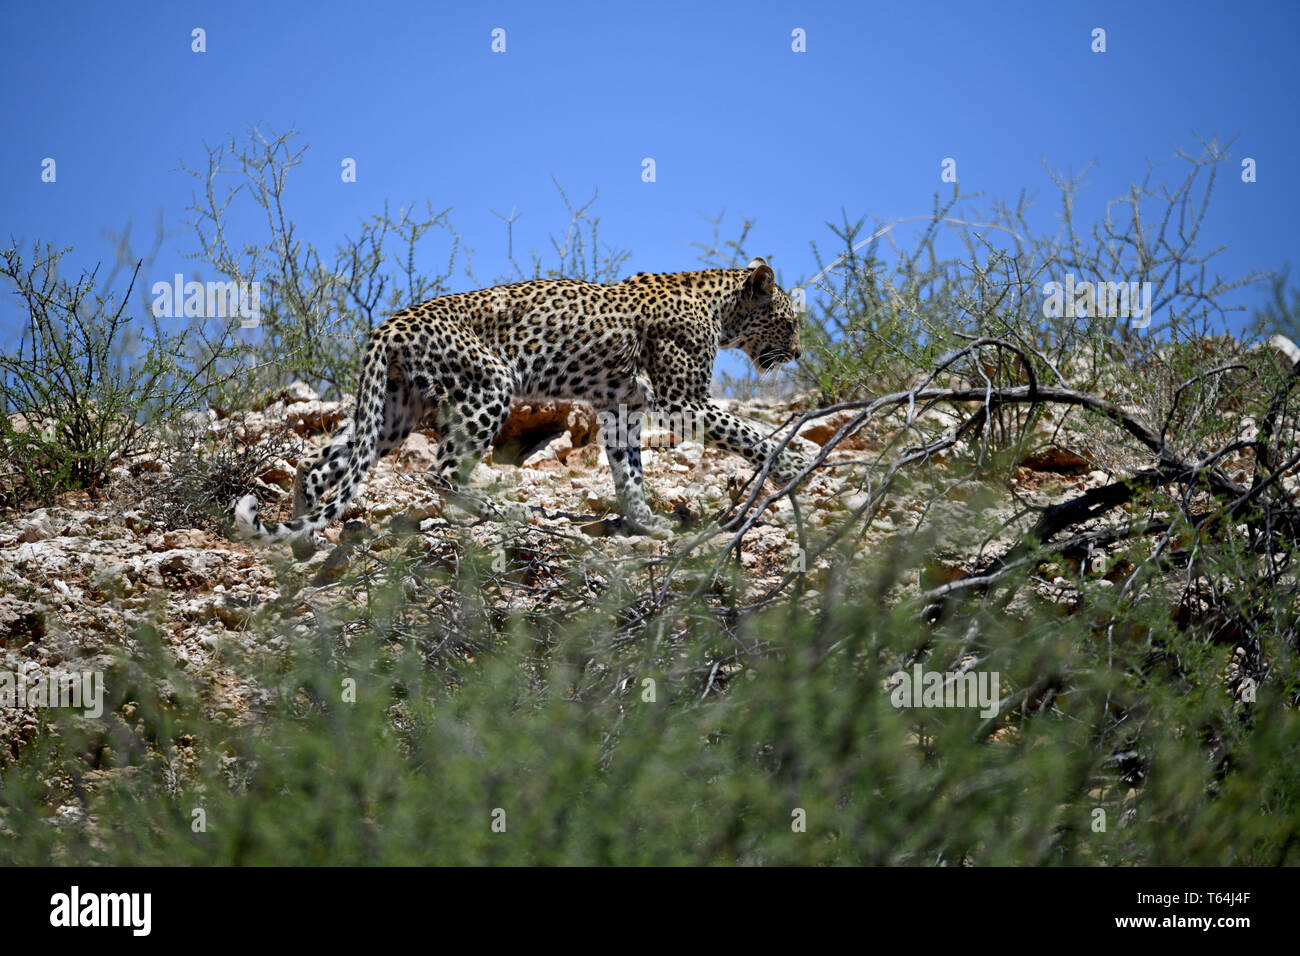 Barely recognizable and well camouflaged in its speckled coat, a leopard moves on rocky Geroell underground in the South African part of the Kgalagadi Transfrontier National Park, taken on 6.02.2019. The leopard (Panthera pardus) belongs to the family of cats; After the Tiger, Loewen and Jaguar, he is the fourth largest cat of prey. The low-susceptible species lives in much of Asia and Africa south of the Sahara, varying in size and weight depending on the environment, male leopards can reach a shoulder height of 70-80 cm and a weight of up to 90 kg. Photo: Matthias Toedt/dpa-Zentralbild/Z - Stock Image